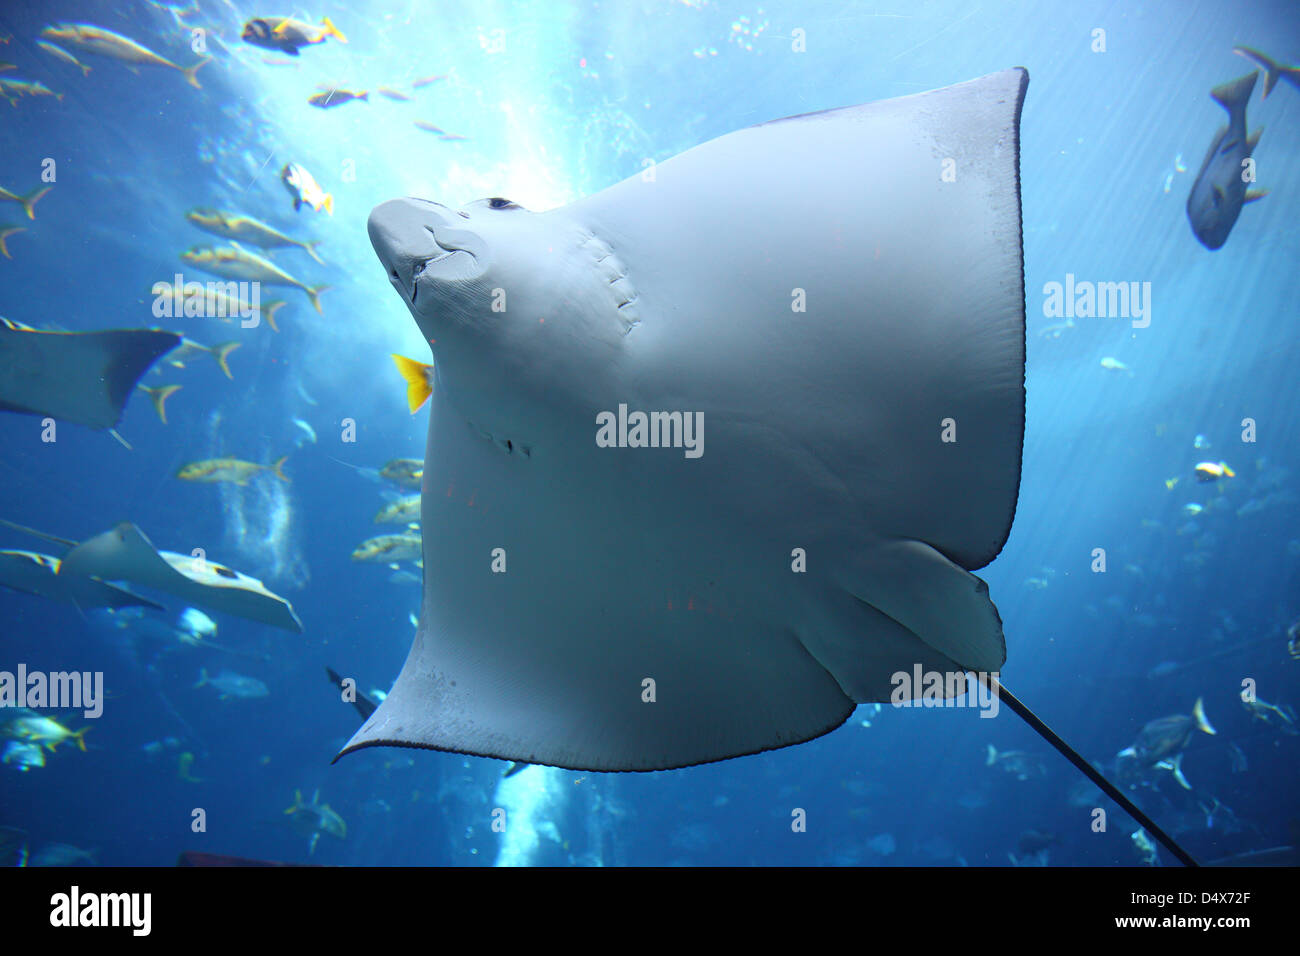 Aquarium at the Atlantis hotel, Dubai, United Arab Emirates - Stock Image